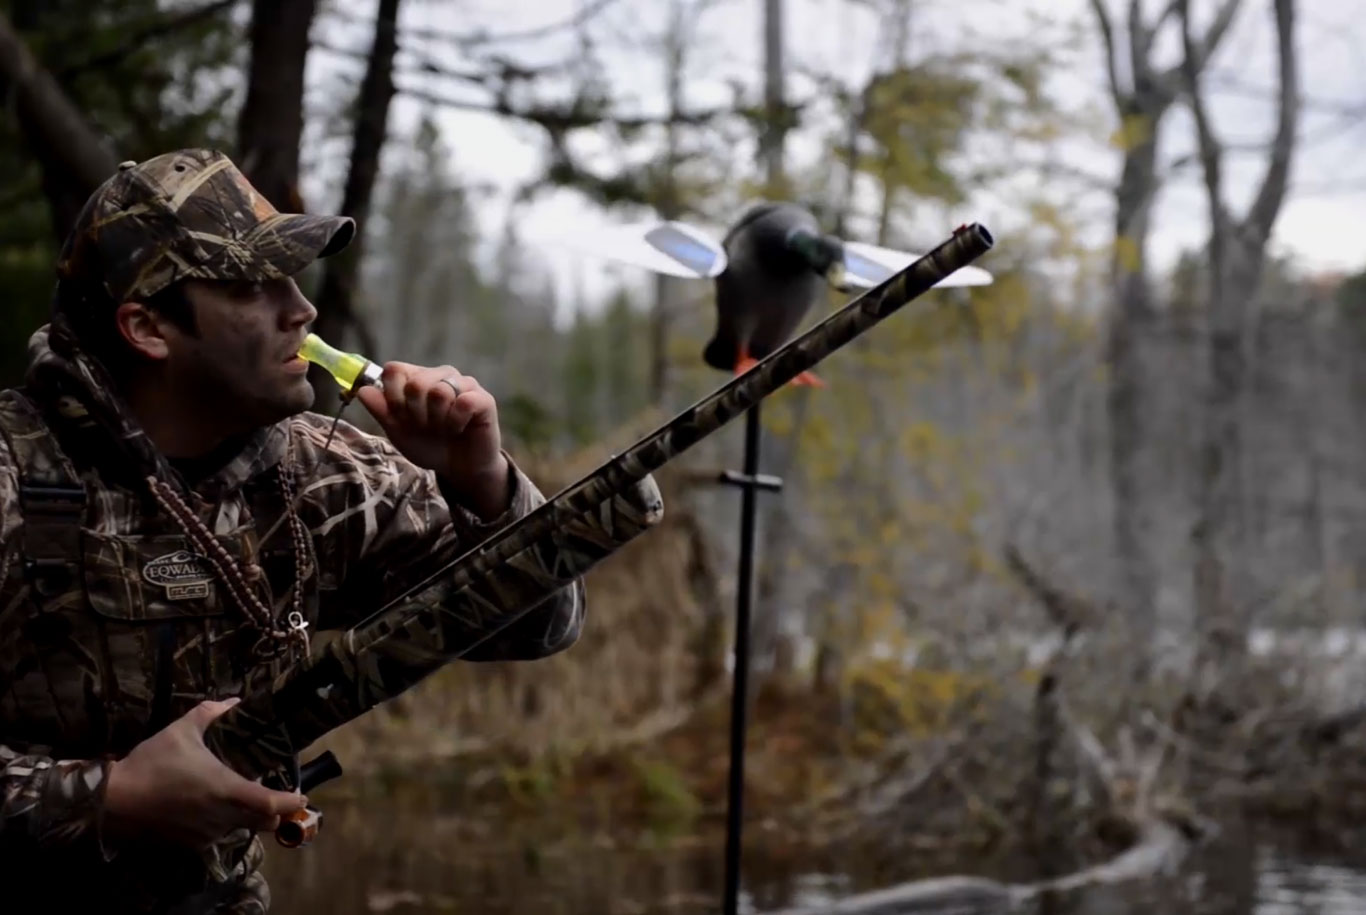 Hunter using a duck call from the blind